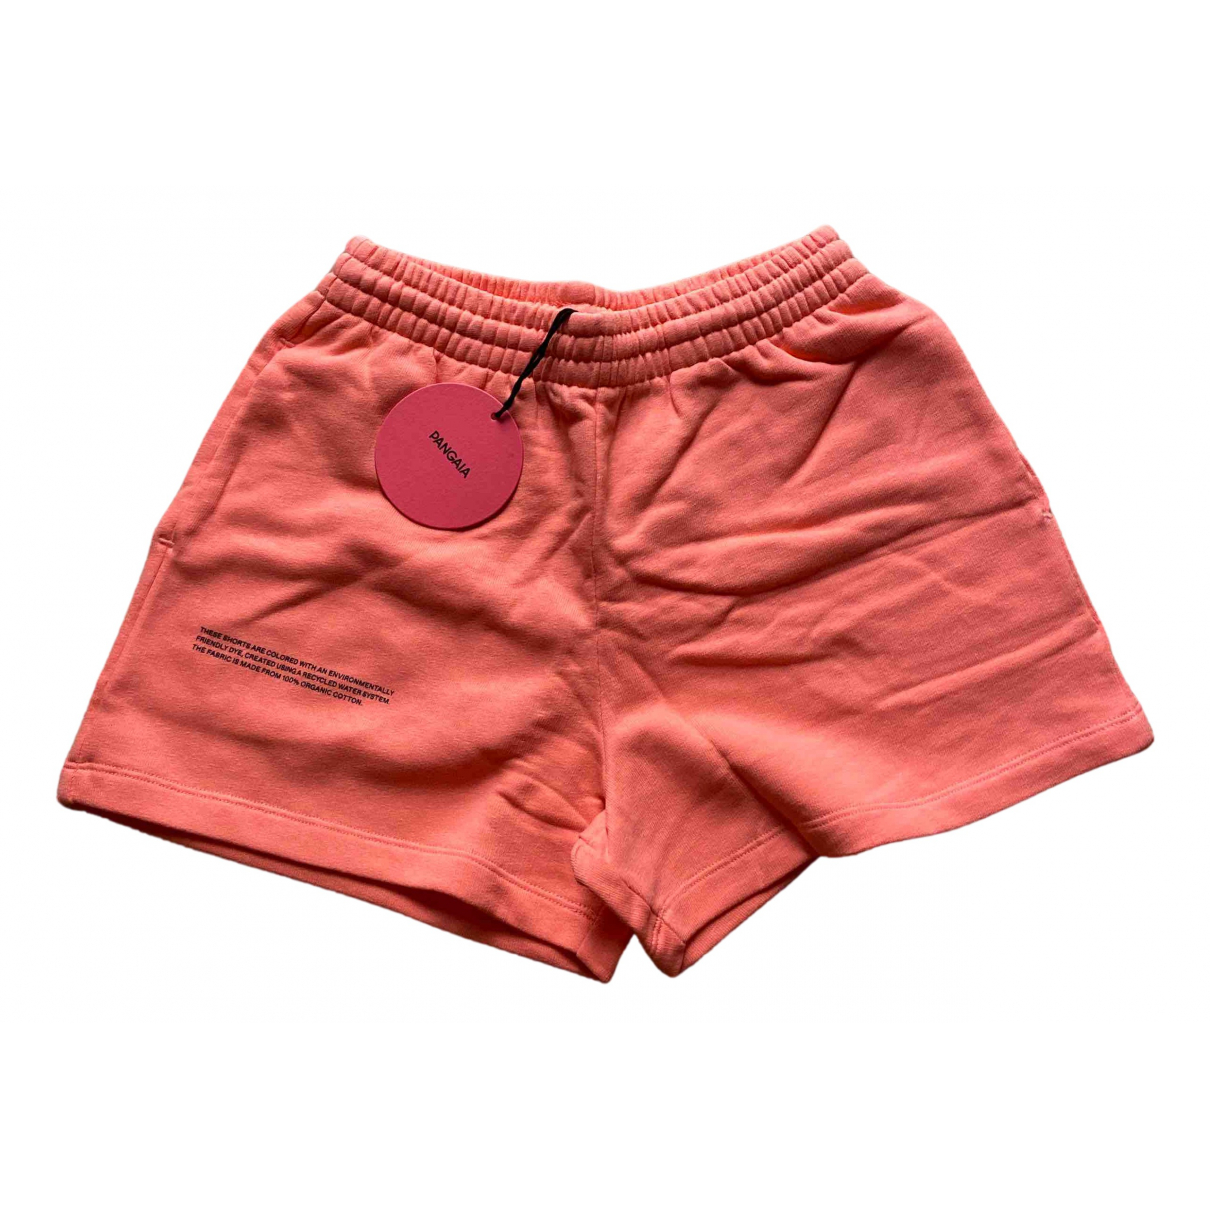 The Pangaia N Cotton Shorts for Women S International